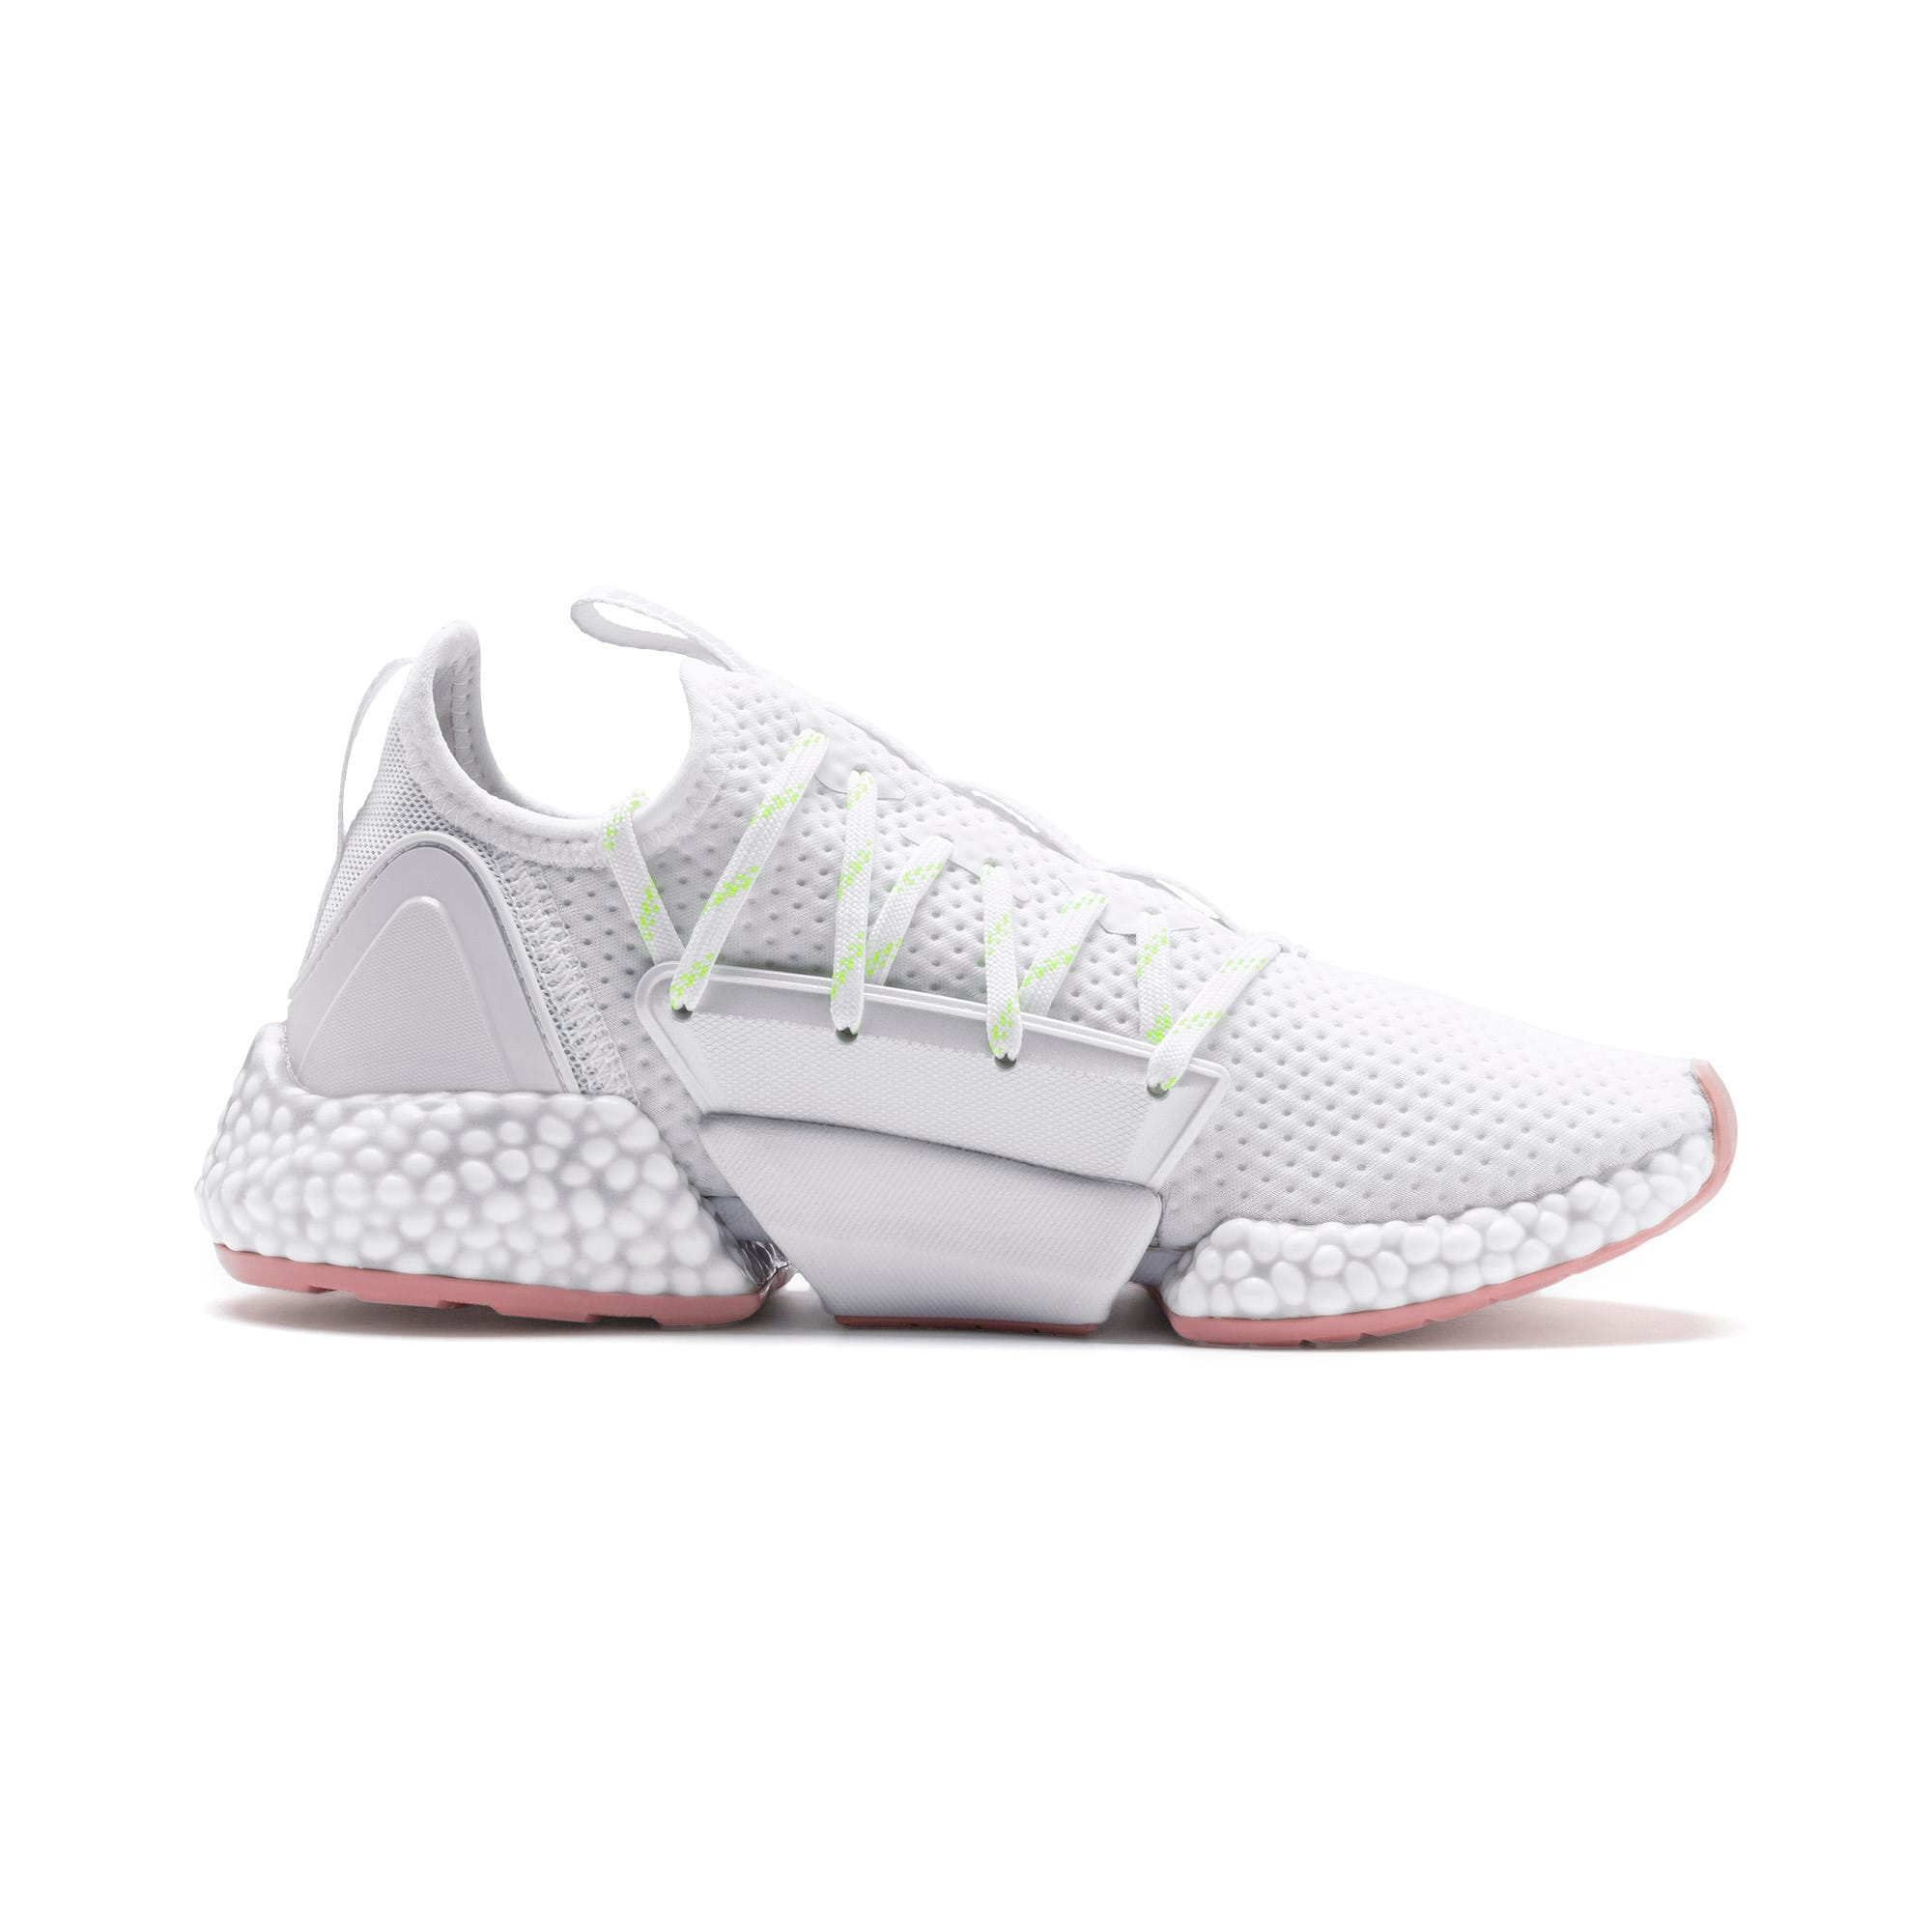 Thumbnail 6 of HYBRID Rocket Aero Women's Running Shoes, Puma White-Bridal Rose, medium